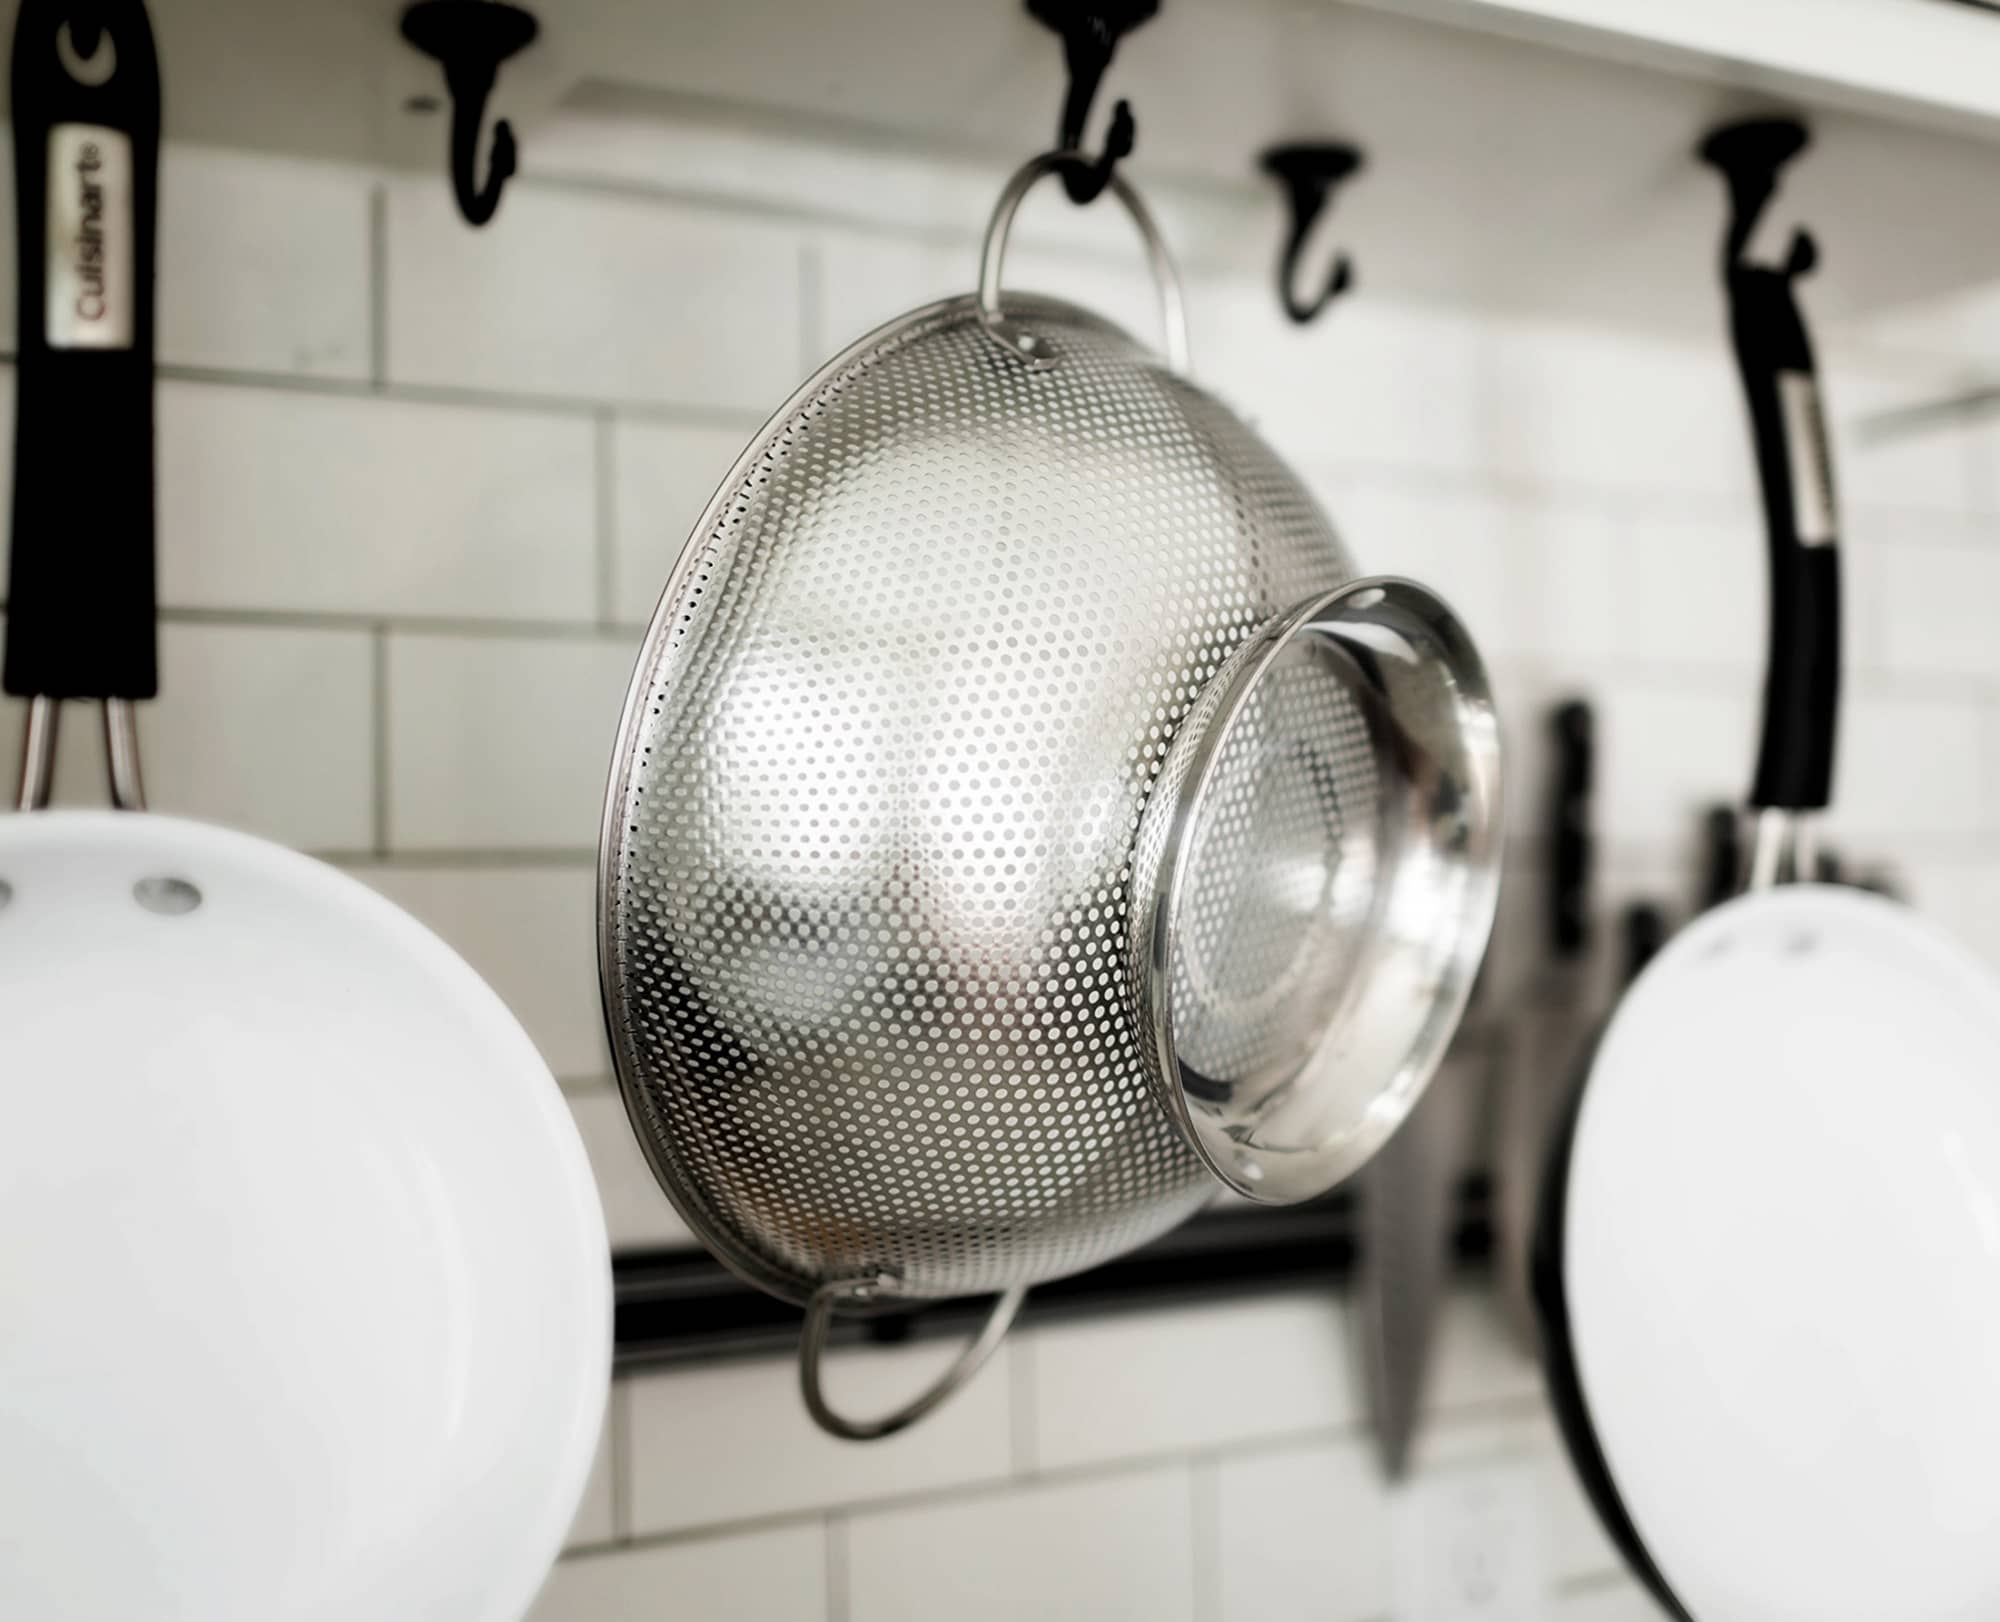 Big Riveted Handles help Benchusch Premium Stainless Steel Colander easy to hold in the kitchen